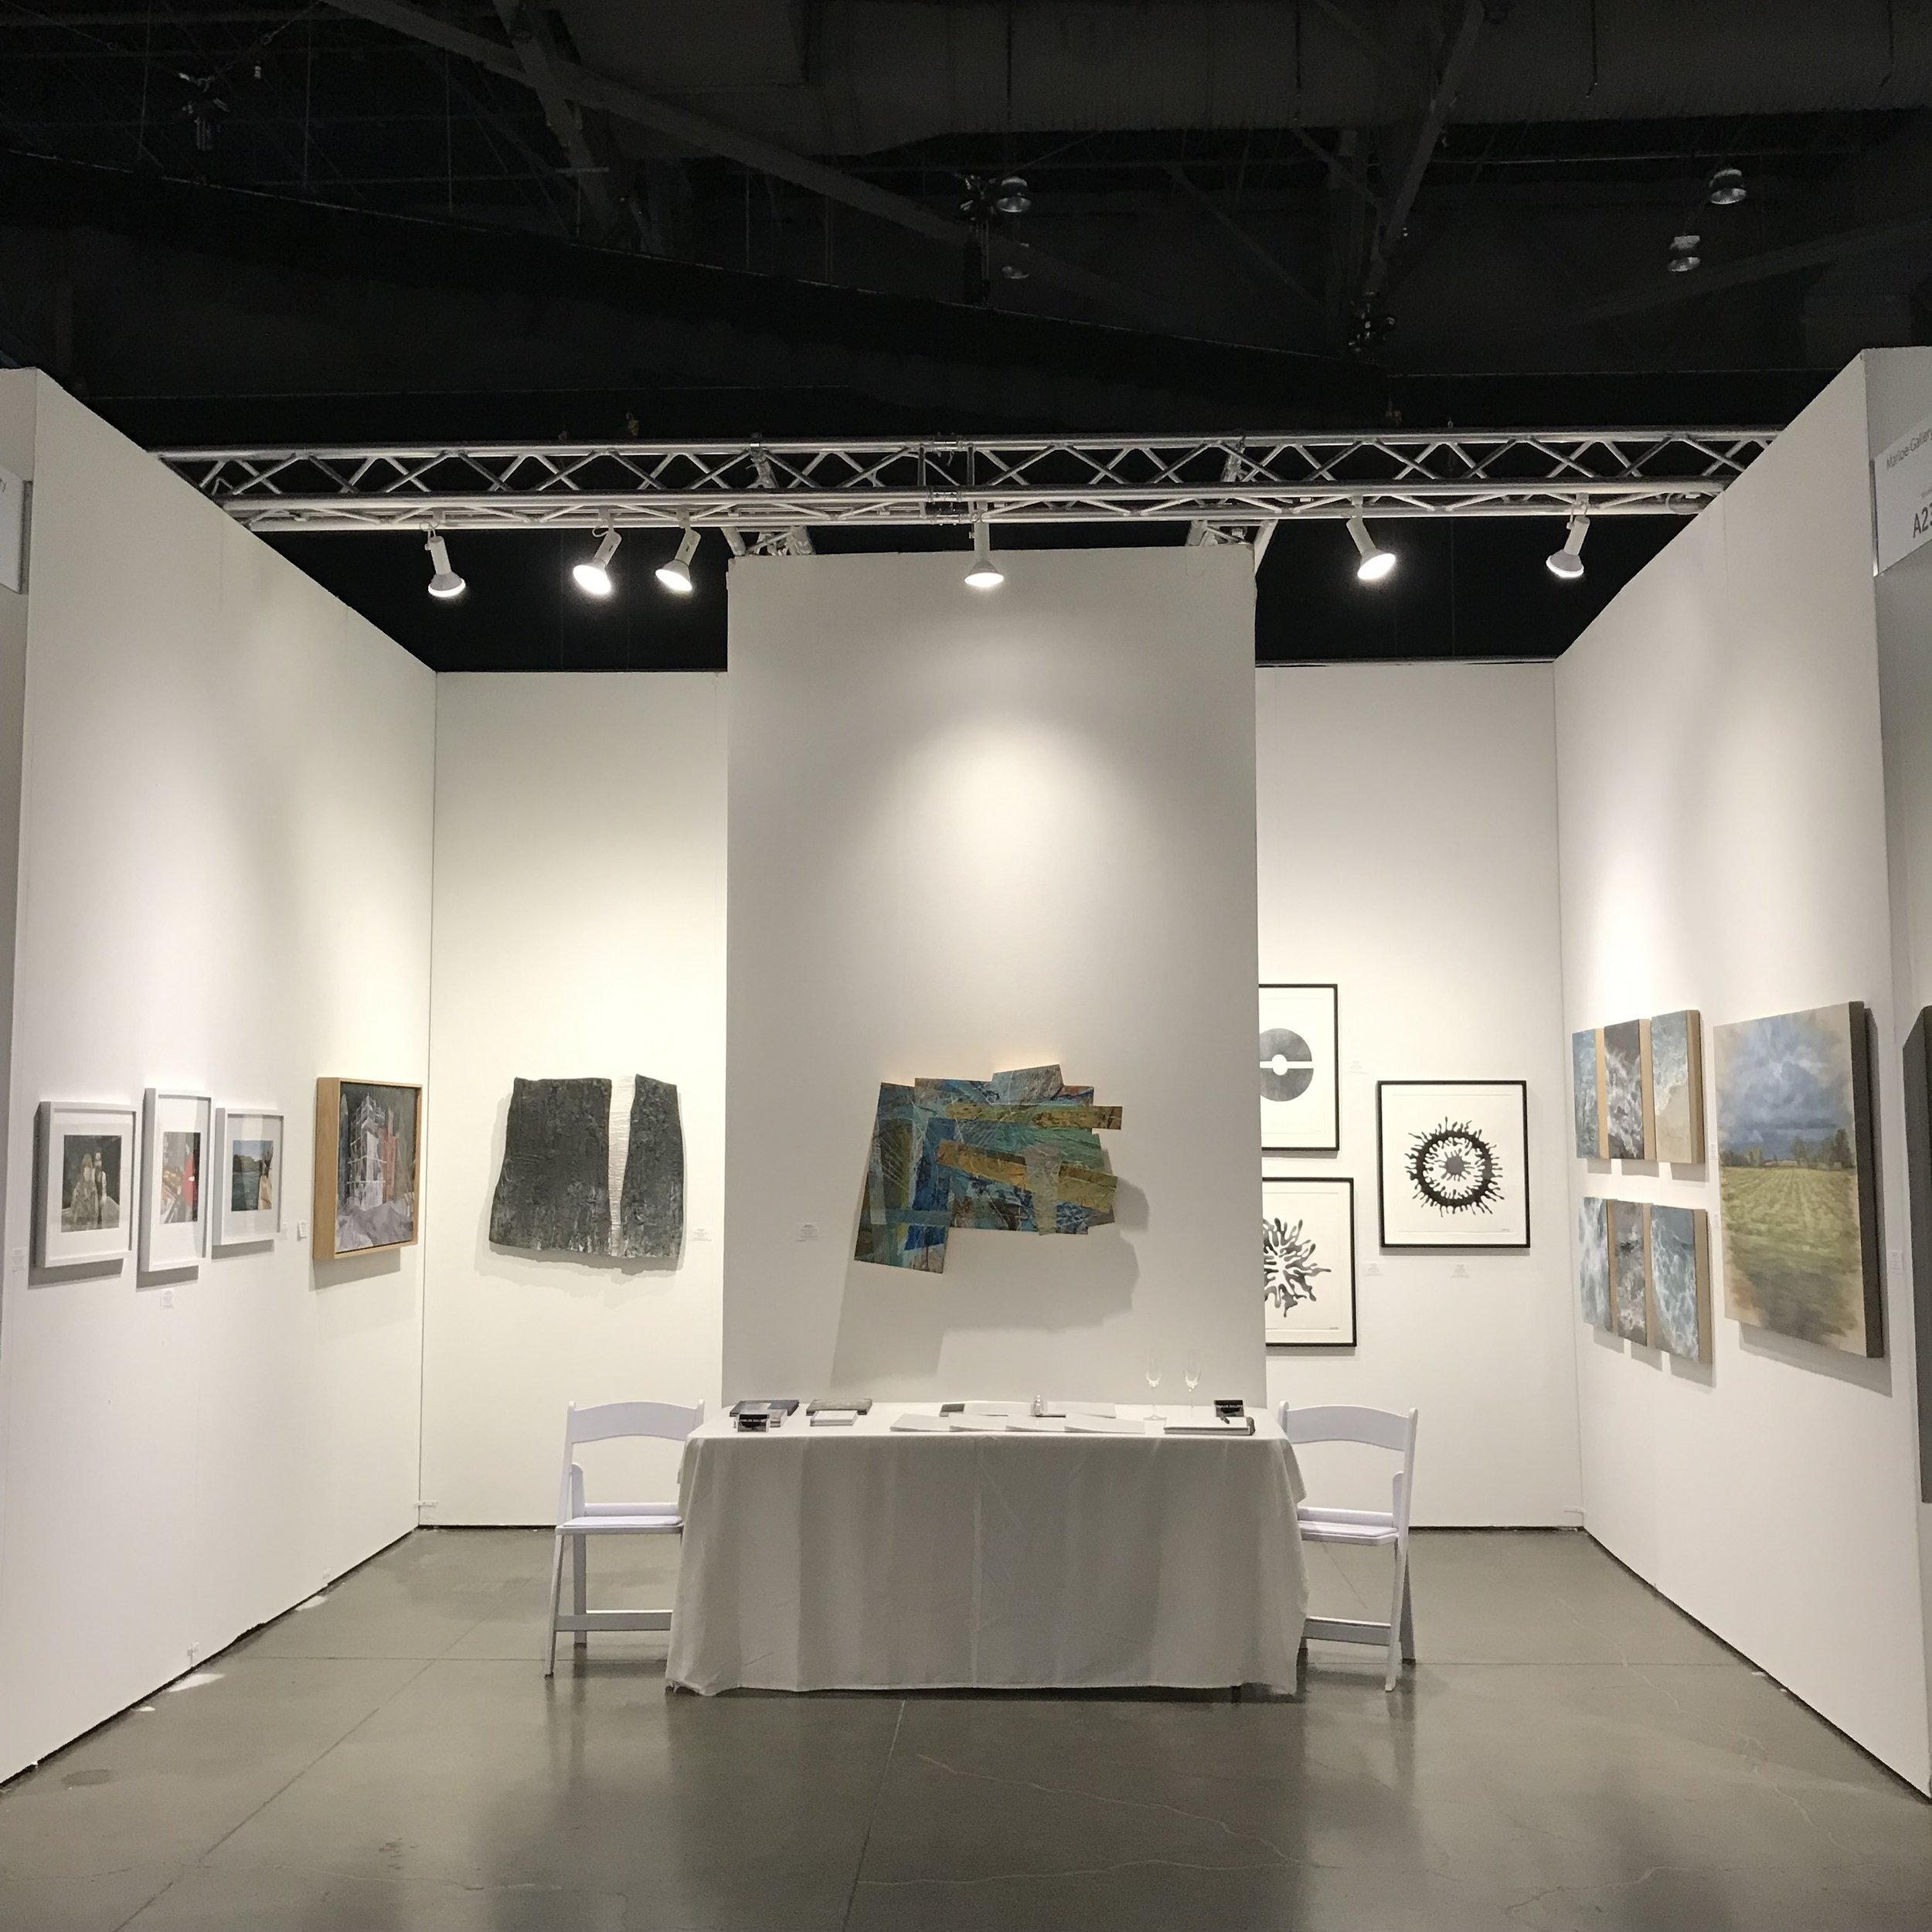 Seattle Art Fair - CenturyLink Field Event Center, Booth A23August 1 - 4, 2019